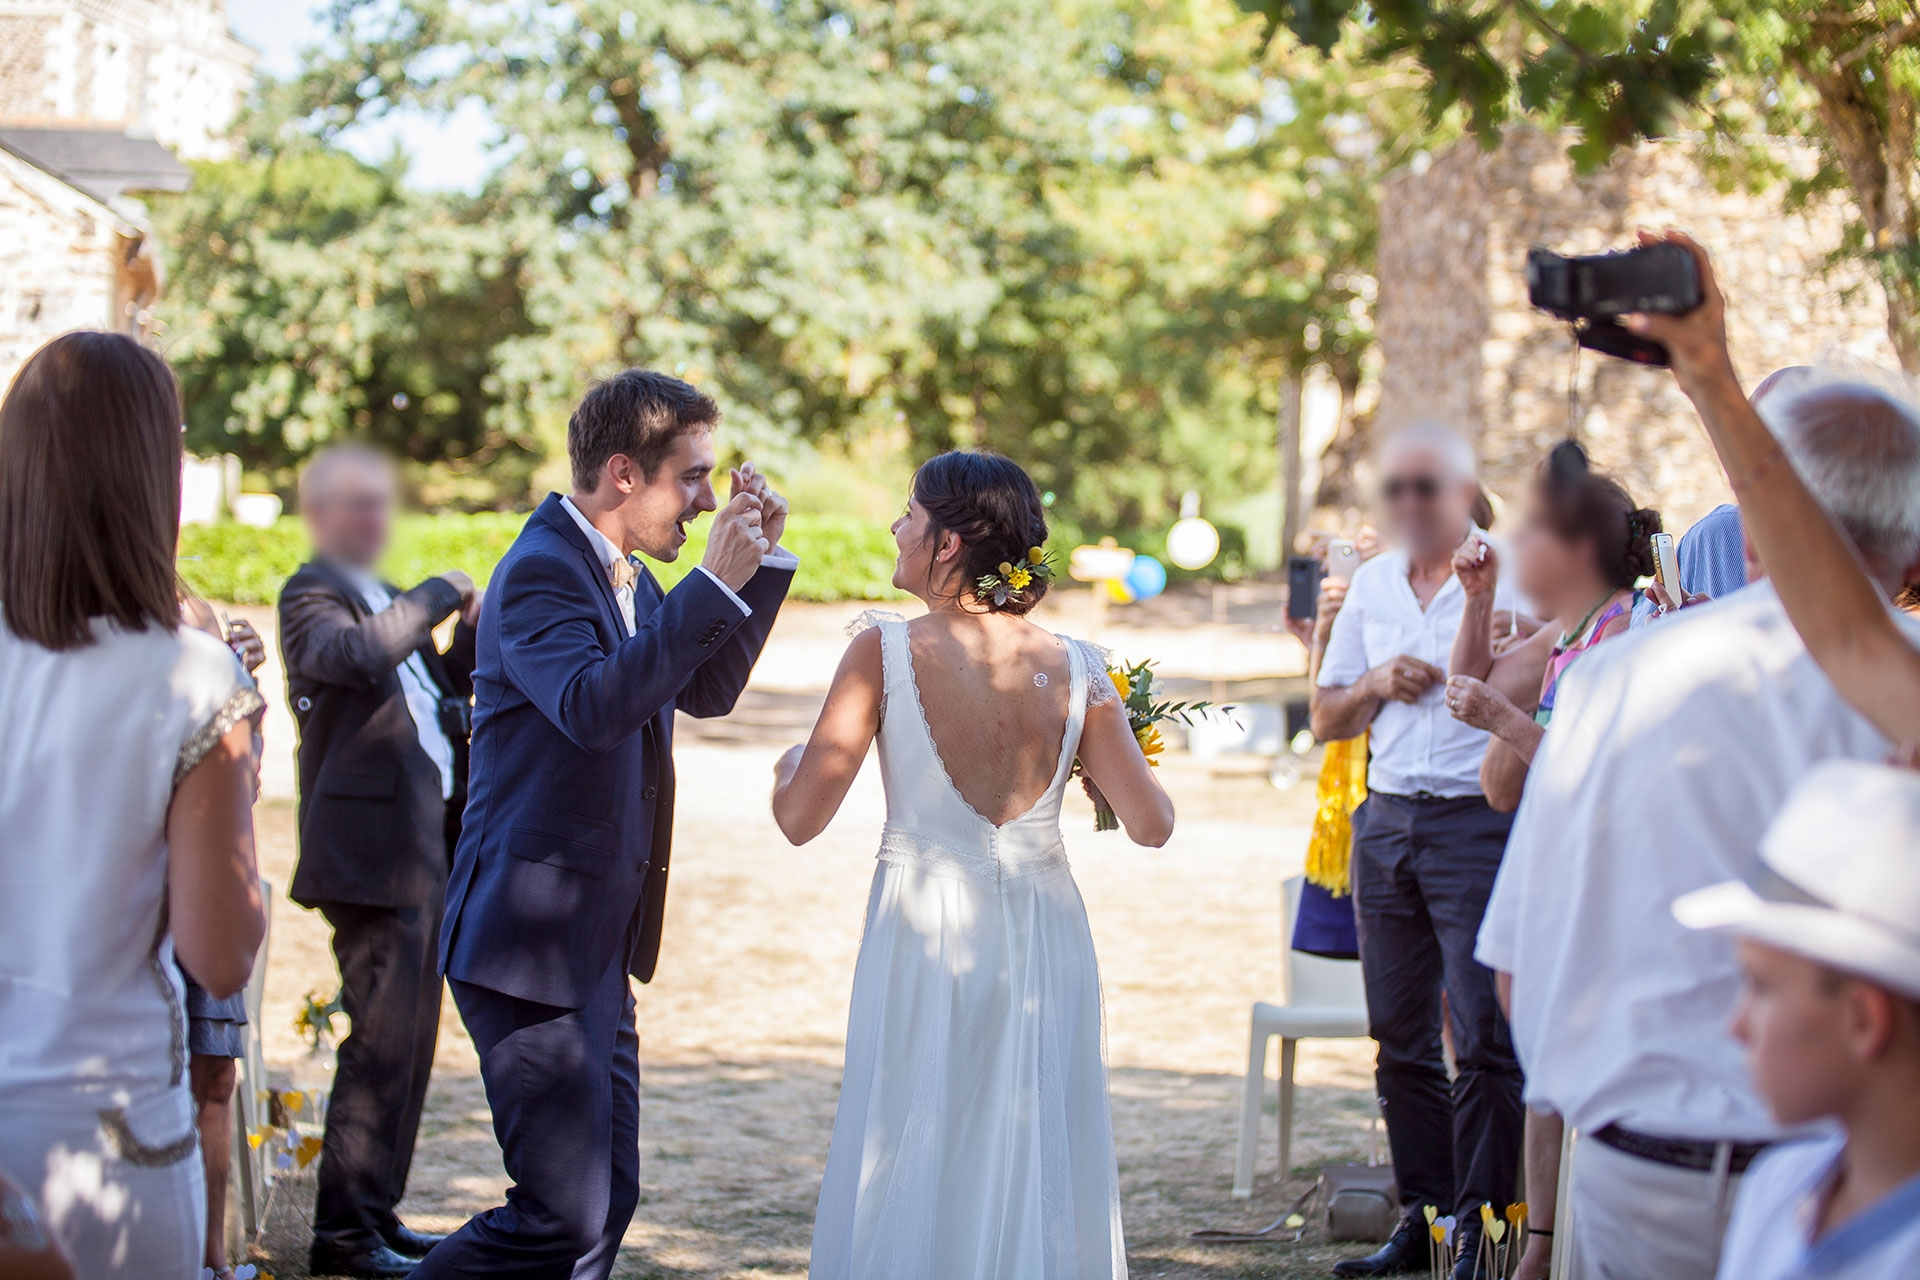 particuliers-evenements-mariage-oui-elise&quentin-51